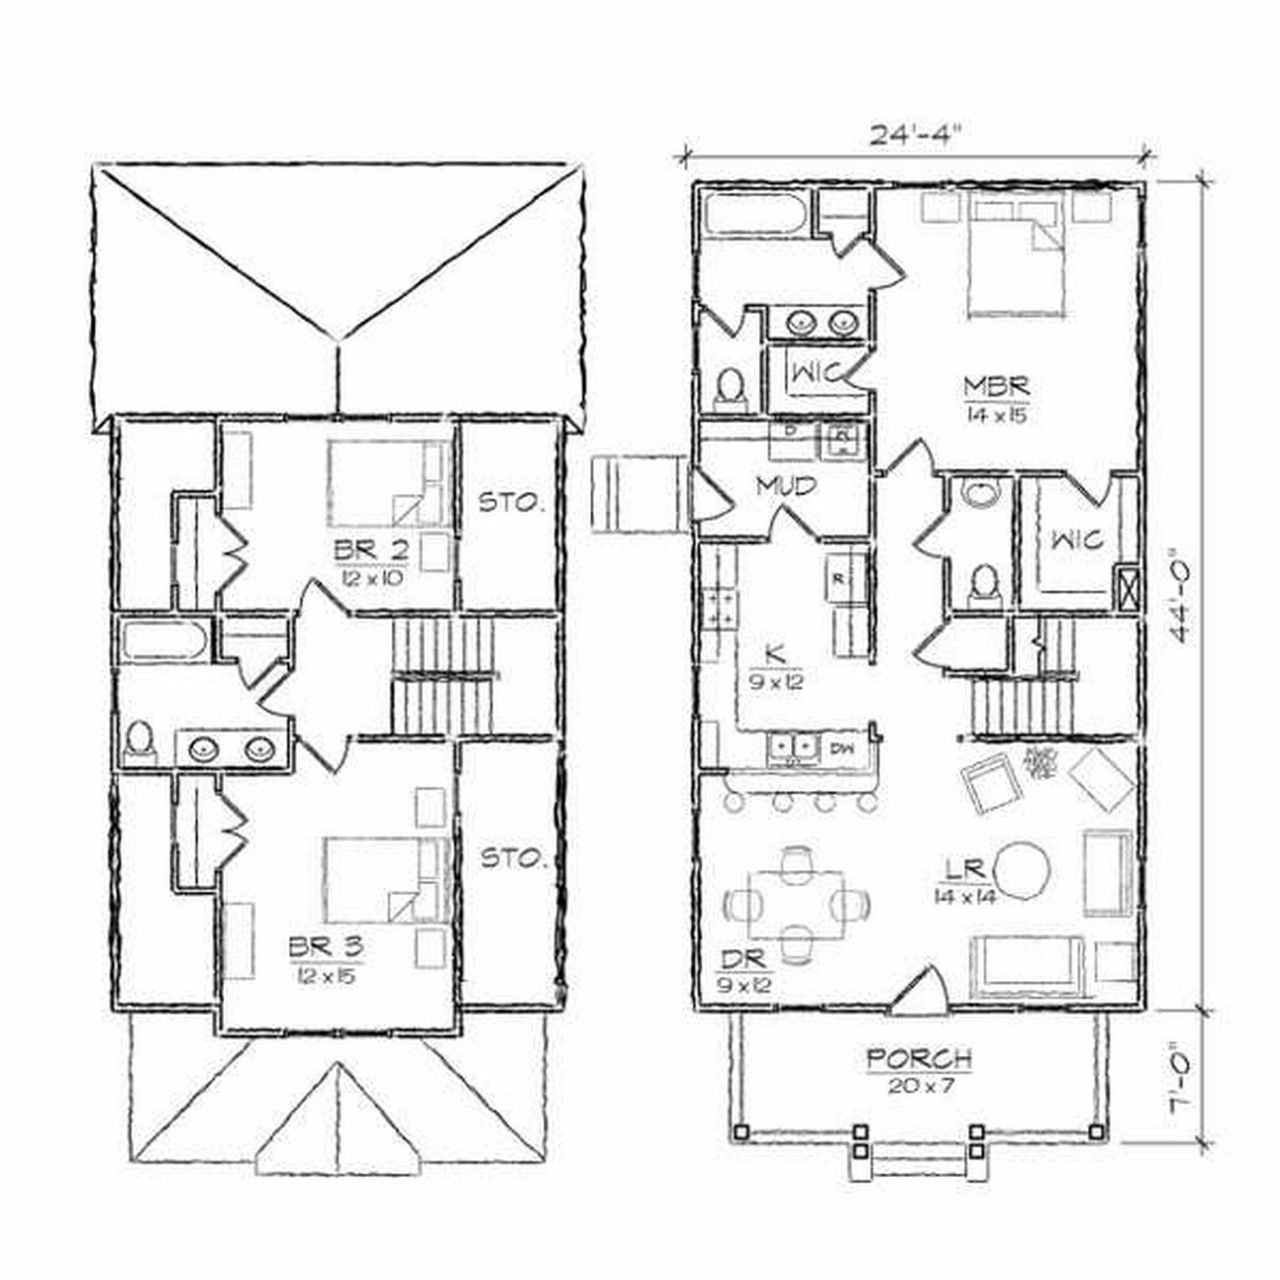 Comely Designing A House Innovation Hot Small Design Ideas Stunning Furnishings Concept Ashleigh III Bungalow Floor Plan Plans 244 X 510